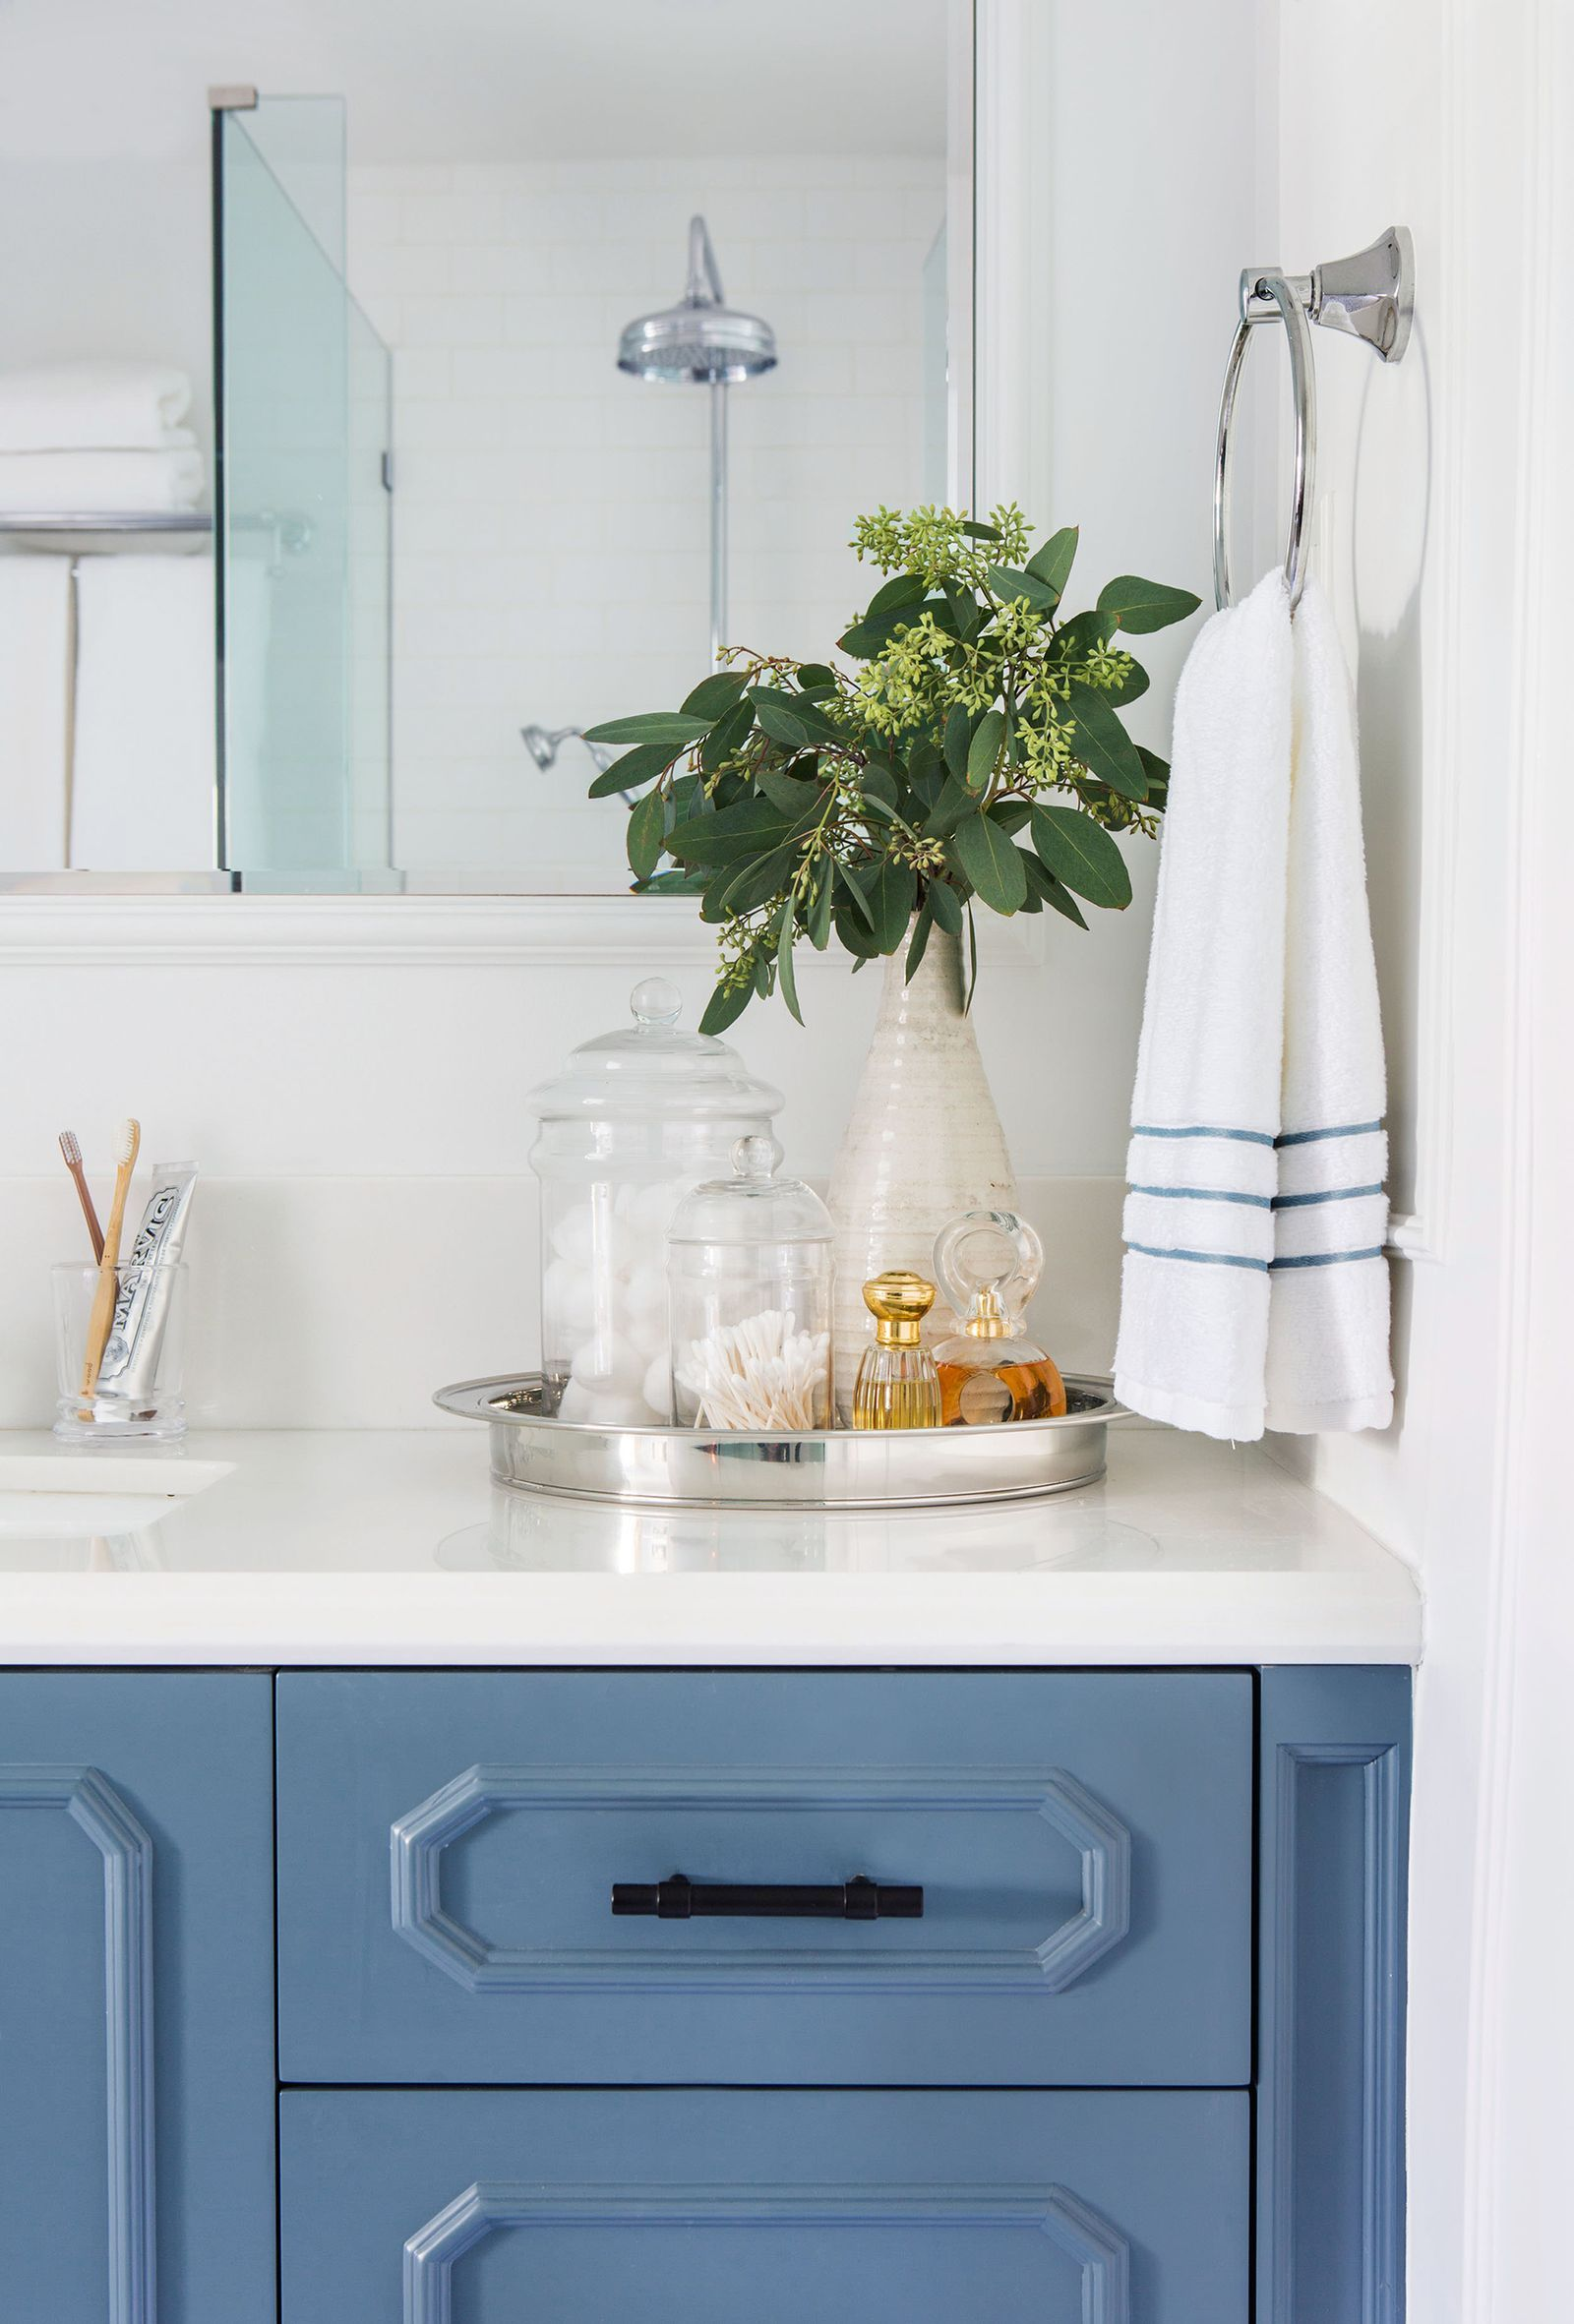 Bathroom Organization Hacks That Will Double Your Space